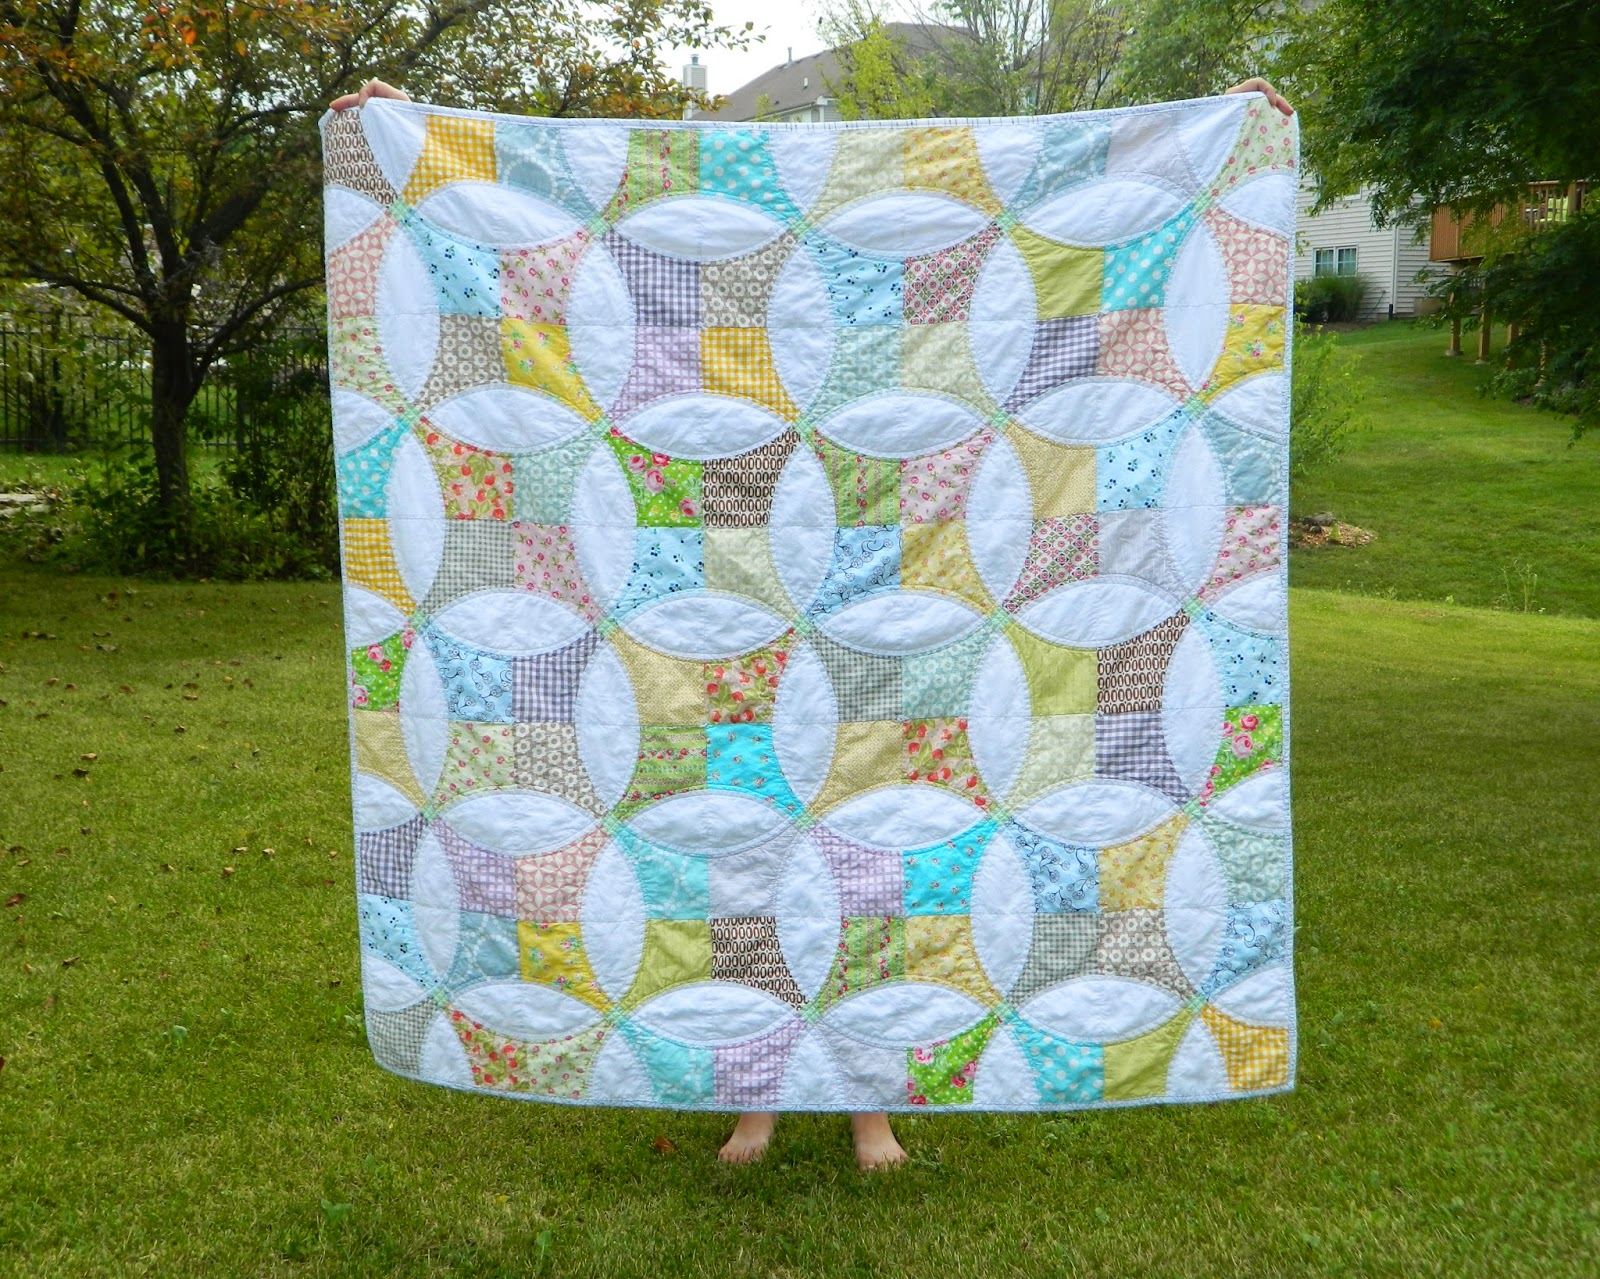 http://sotakhandmade.blogspot.com/2014/08/flowering-snowball-finished-quilt.html